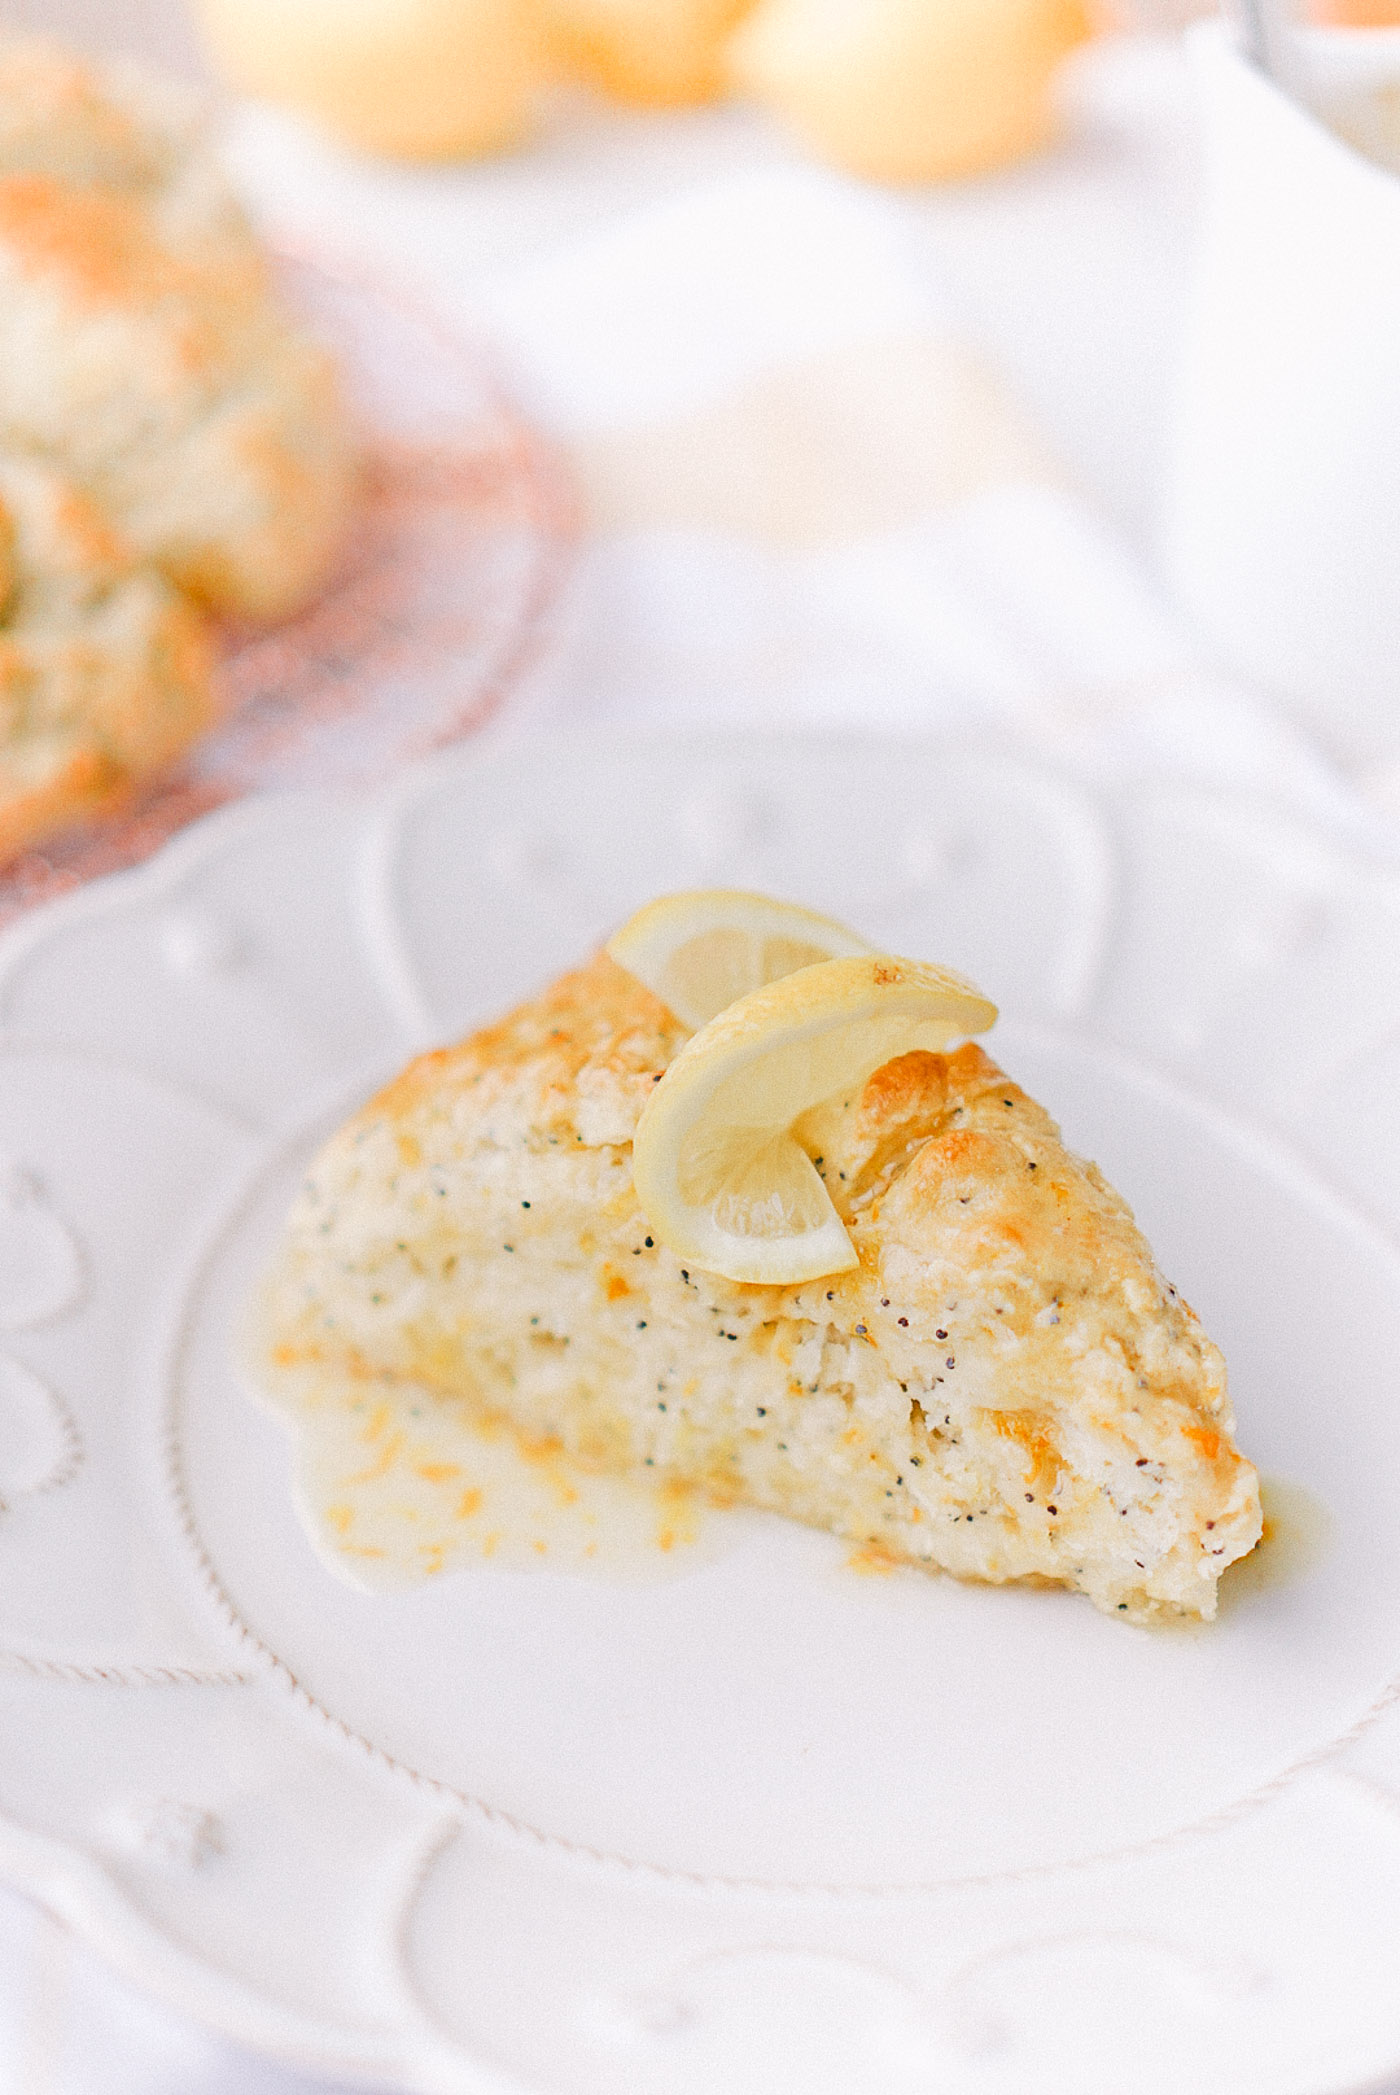 An easy recipe for tender Spring scones, full of citrus, poppy seeds, and buttermilk by Lauren Cermak of the Southern lifestyle blog, Going For Grace.